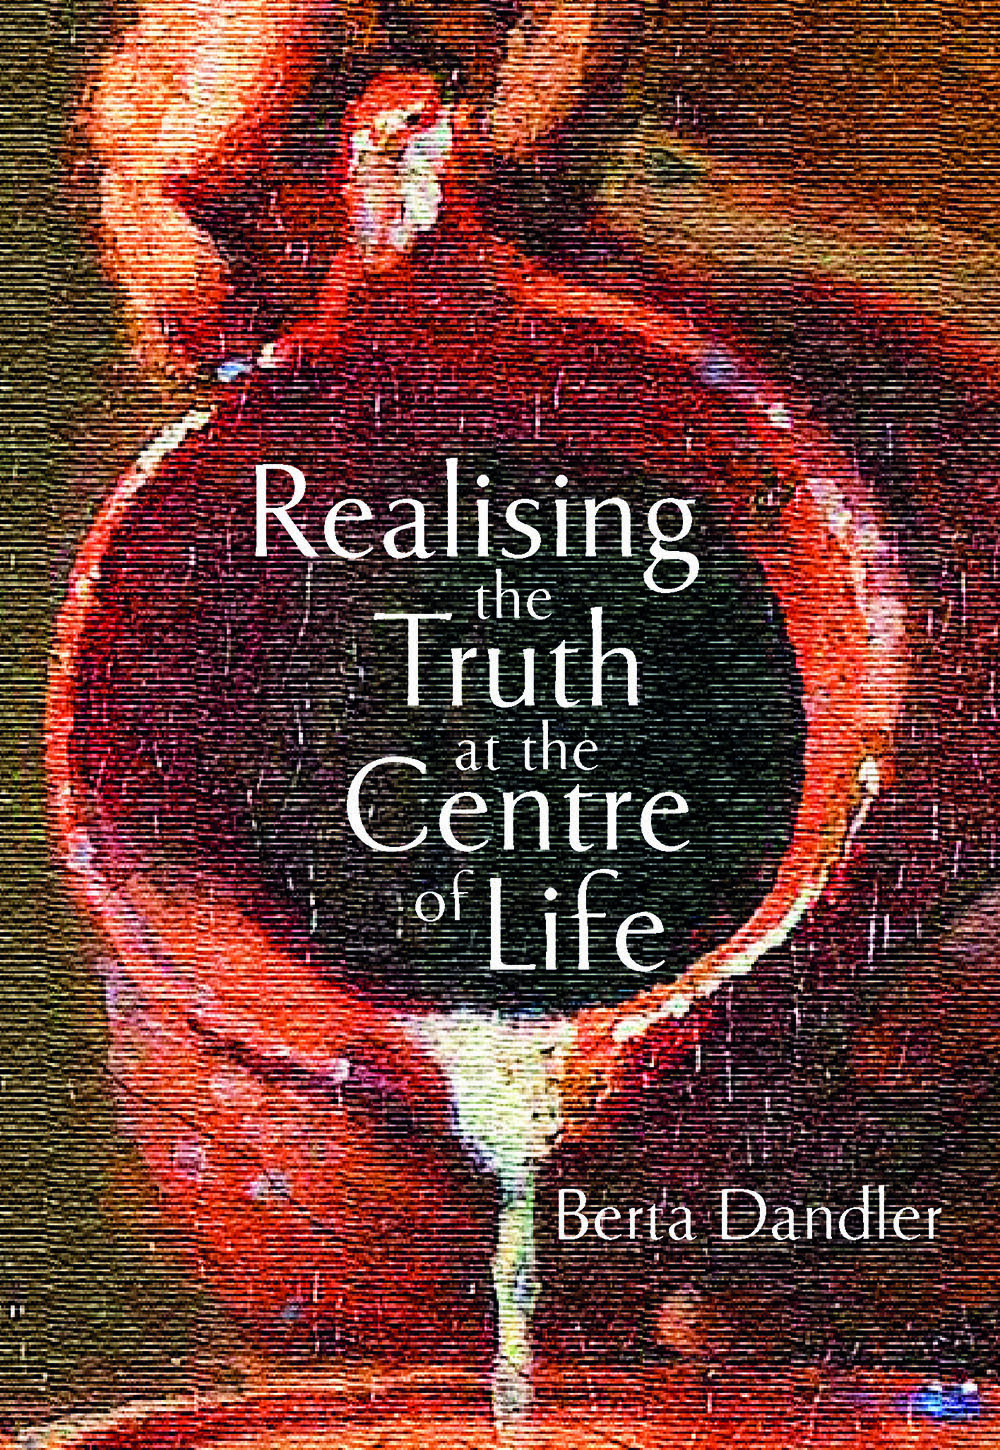 Cover of book Realising the Truth at the Centre of Life